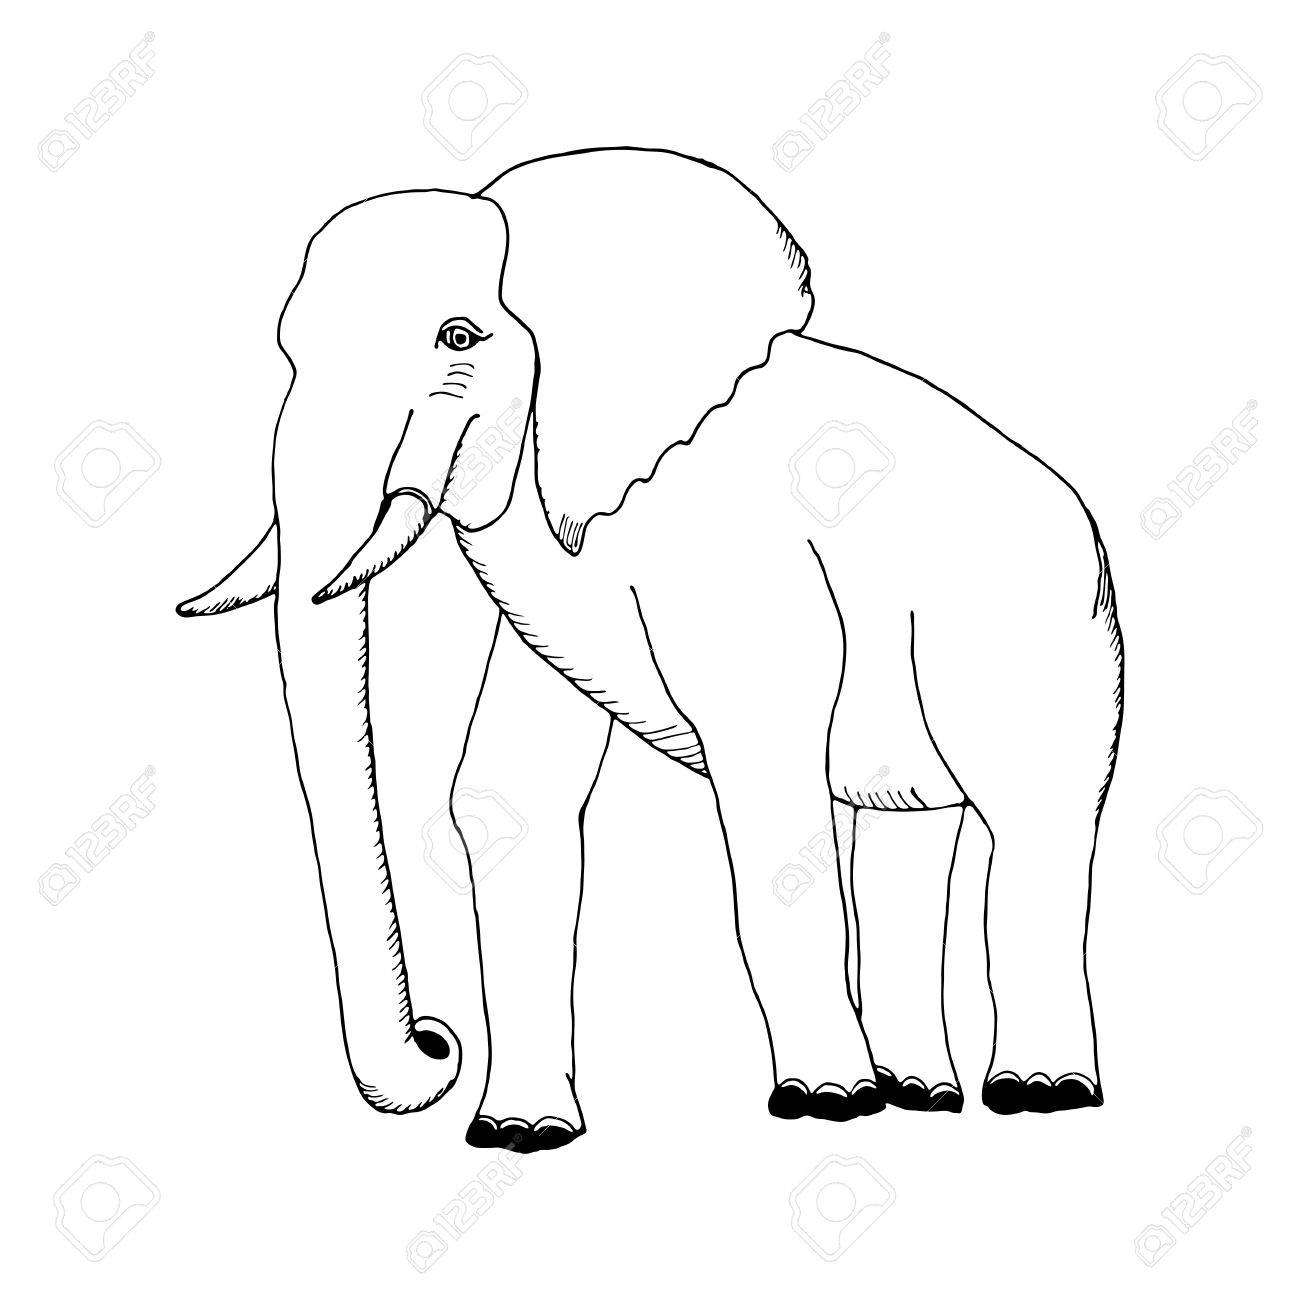 1300x1300 Hand Draw A Sketch In The Style Of An Elephant On A Black White